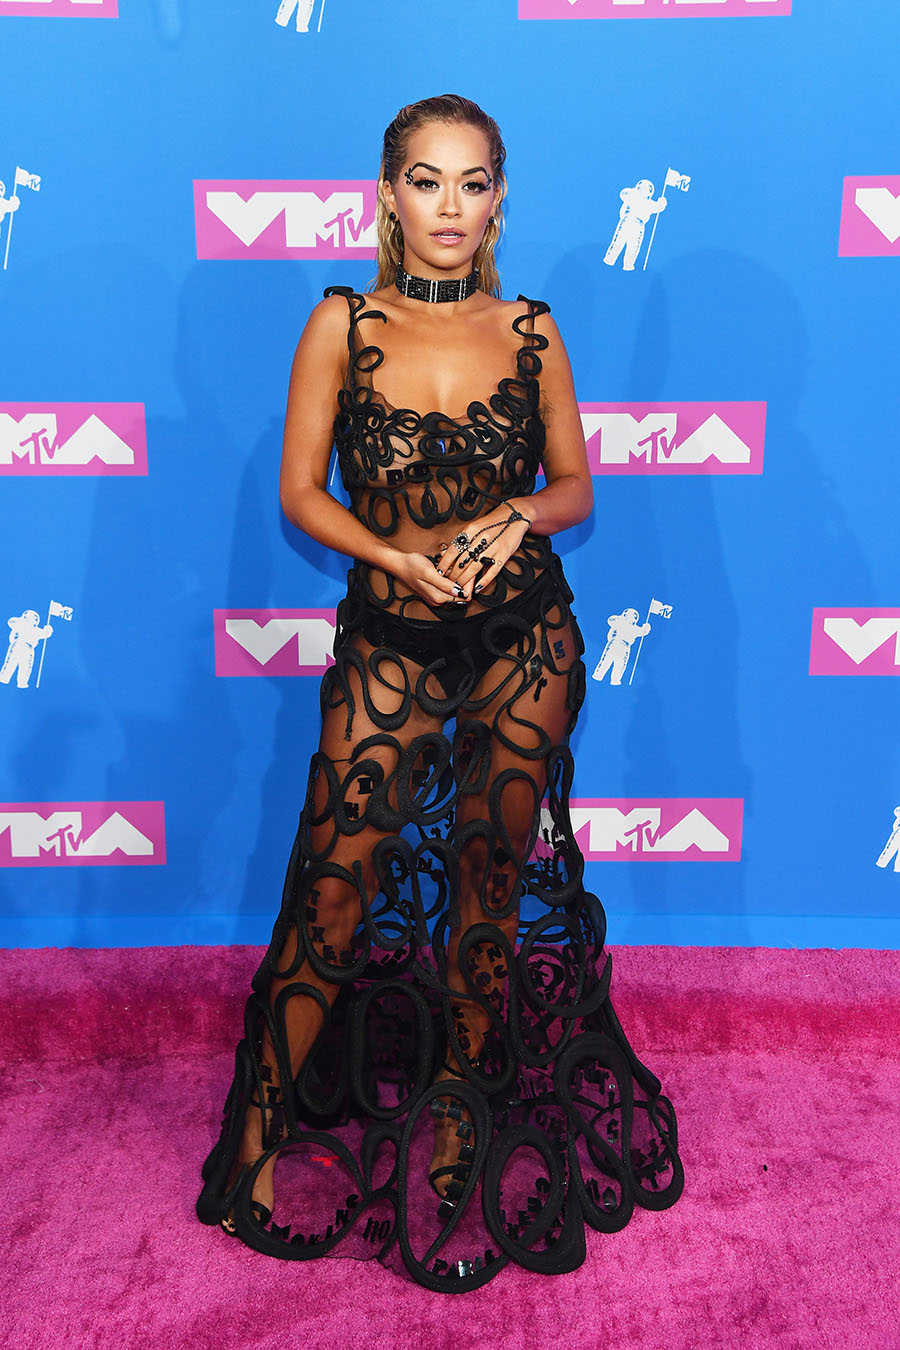 Rita Ora Attends The 2018 MTV Video Music Awards At Radio